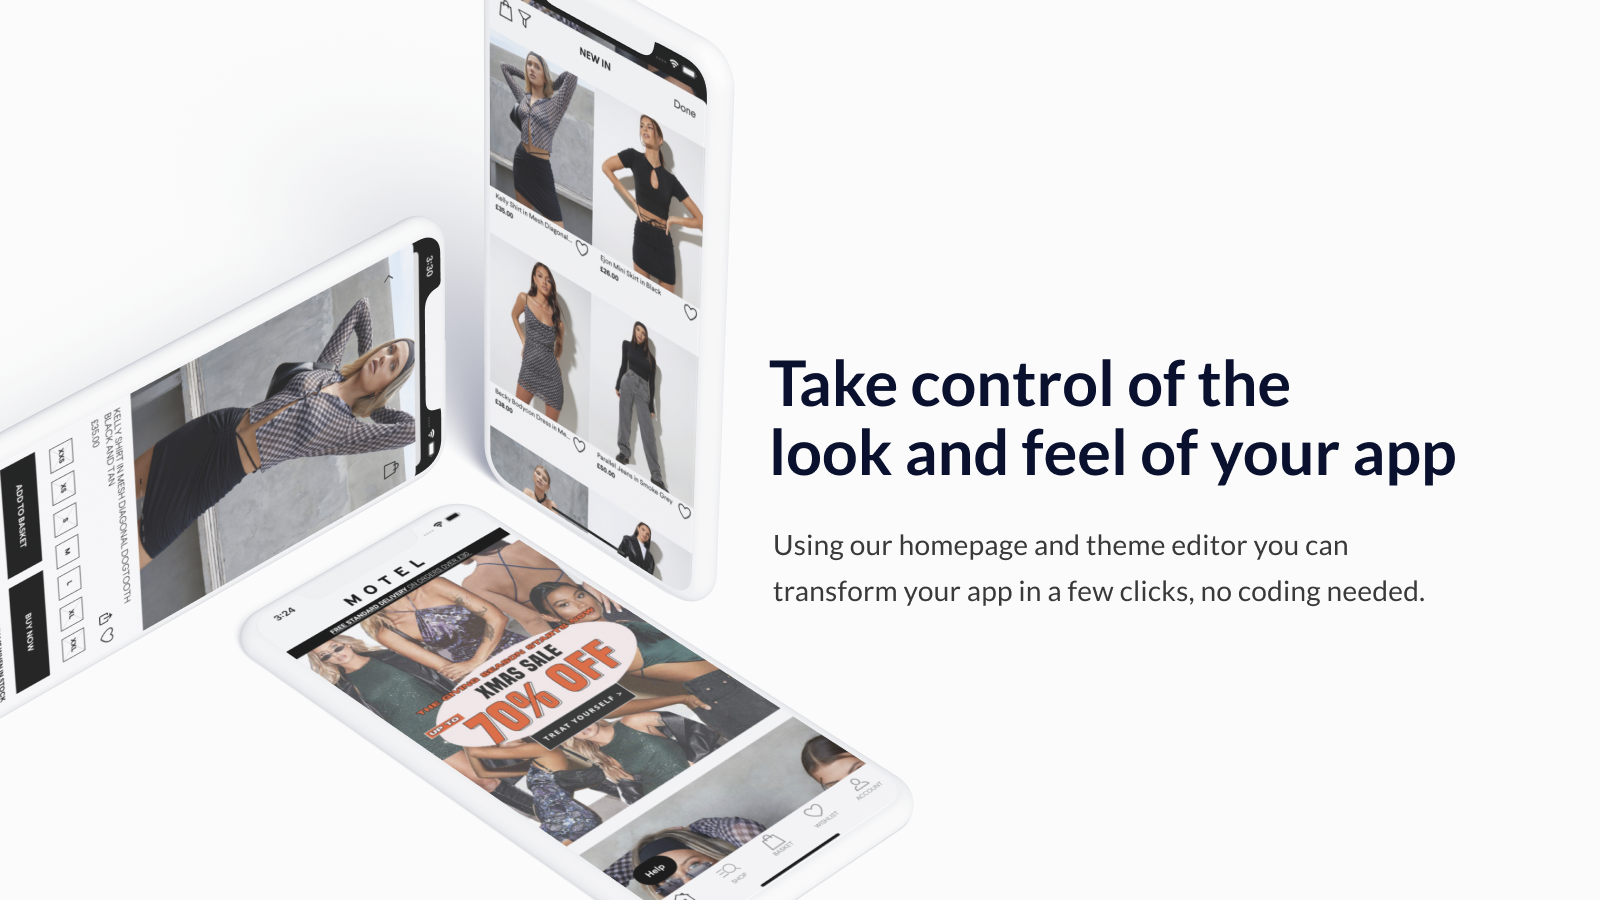 Take control of the look and feel of your apps